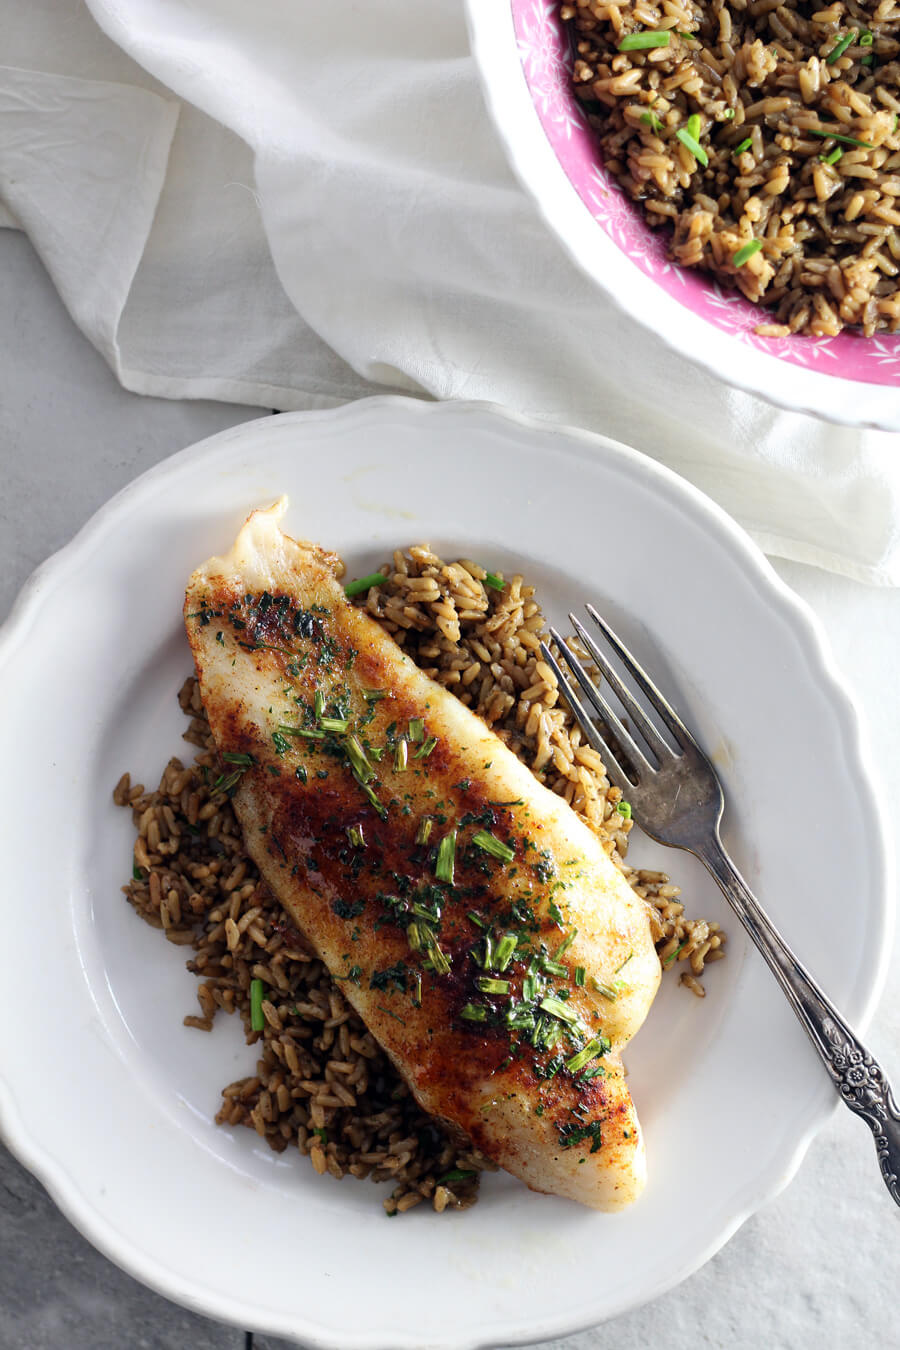 Oven Baked Catfish with Thai Green Curry Rice from Village Harvest